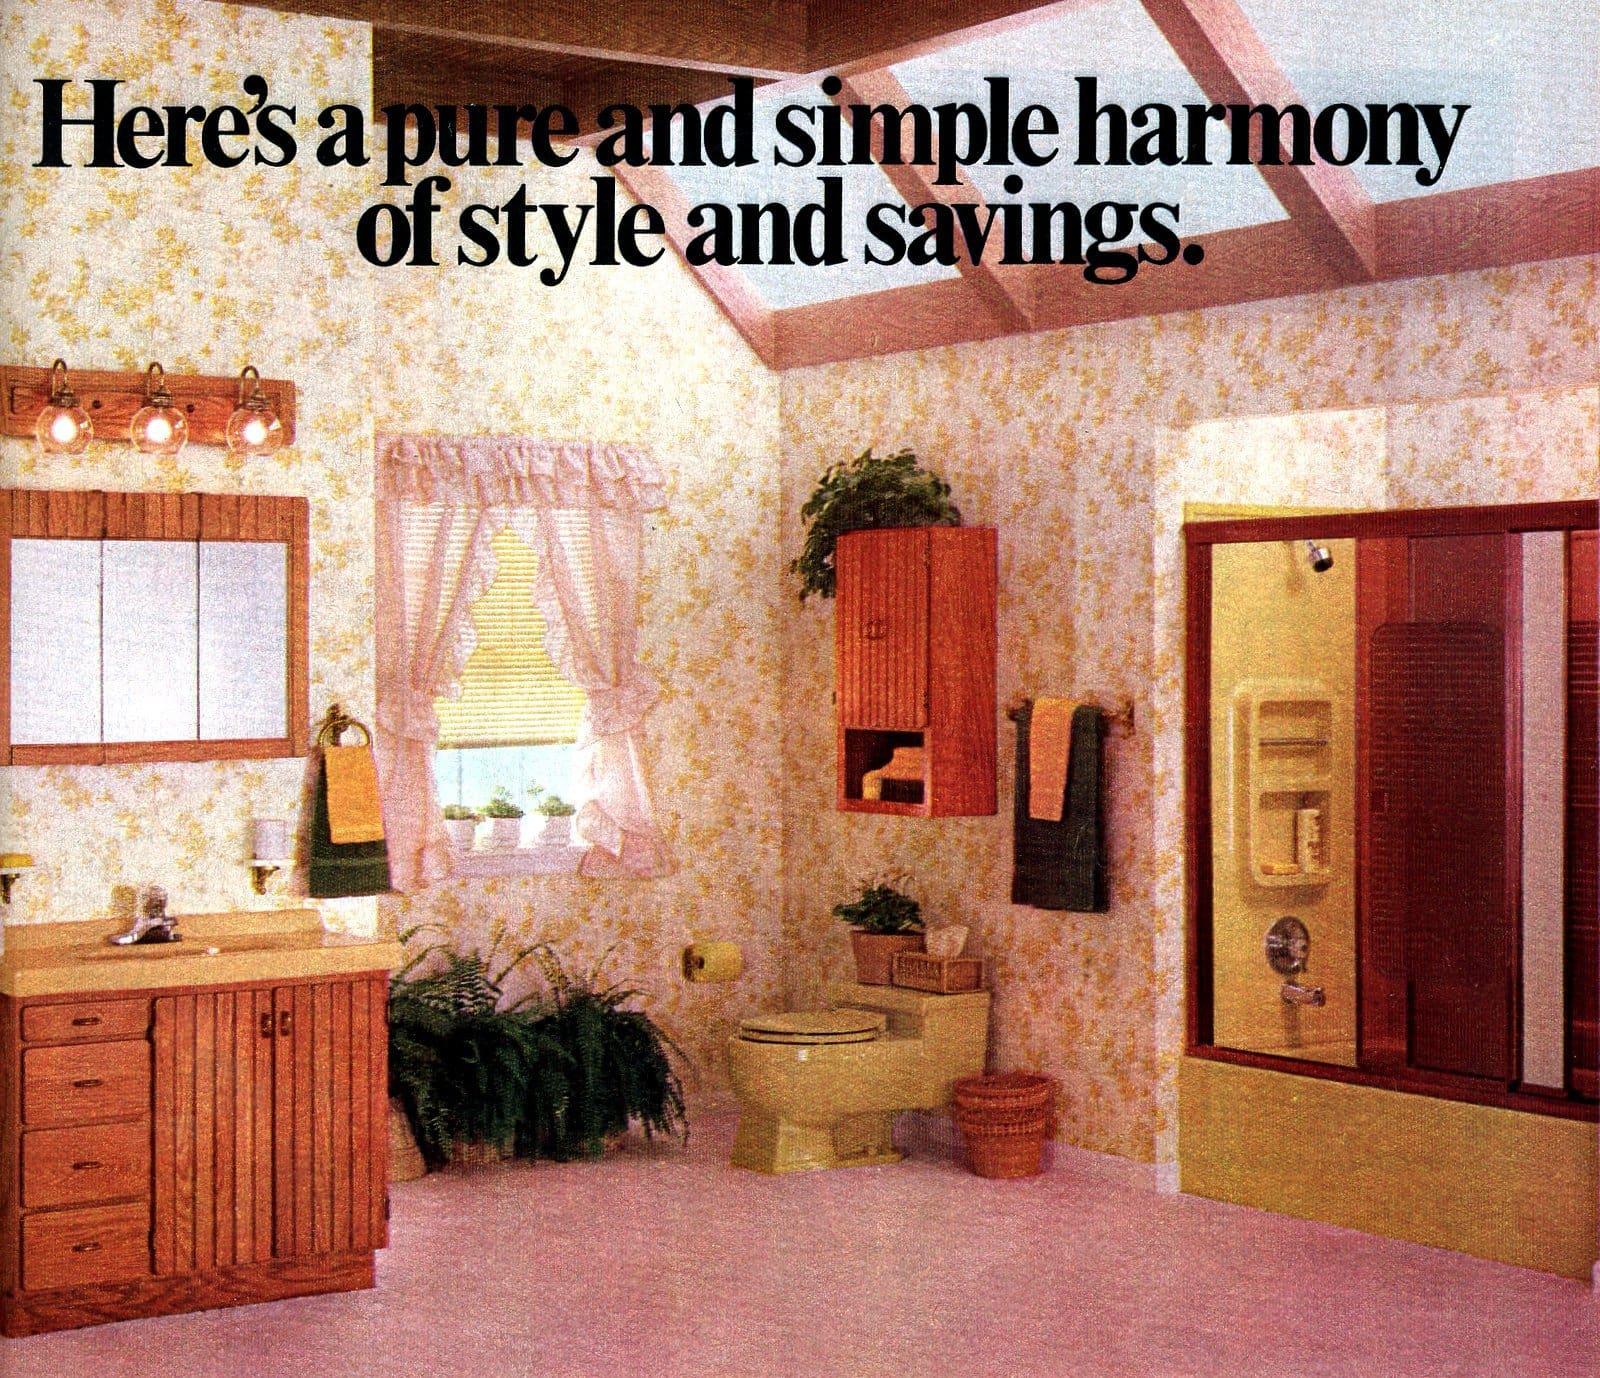 Pink 80s bathroom decor with simple style (1982)